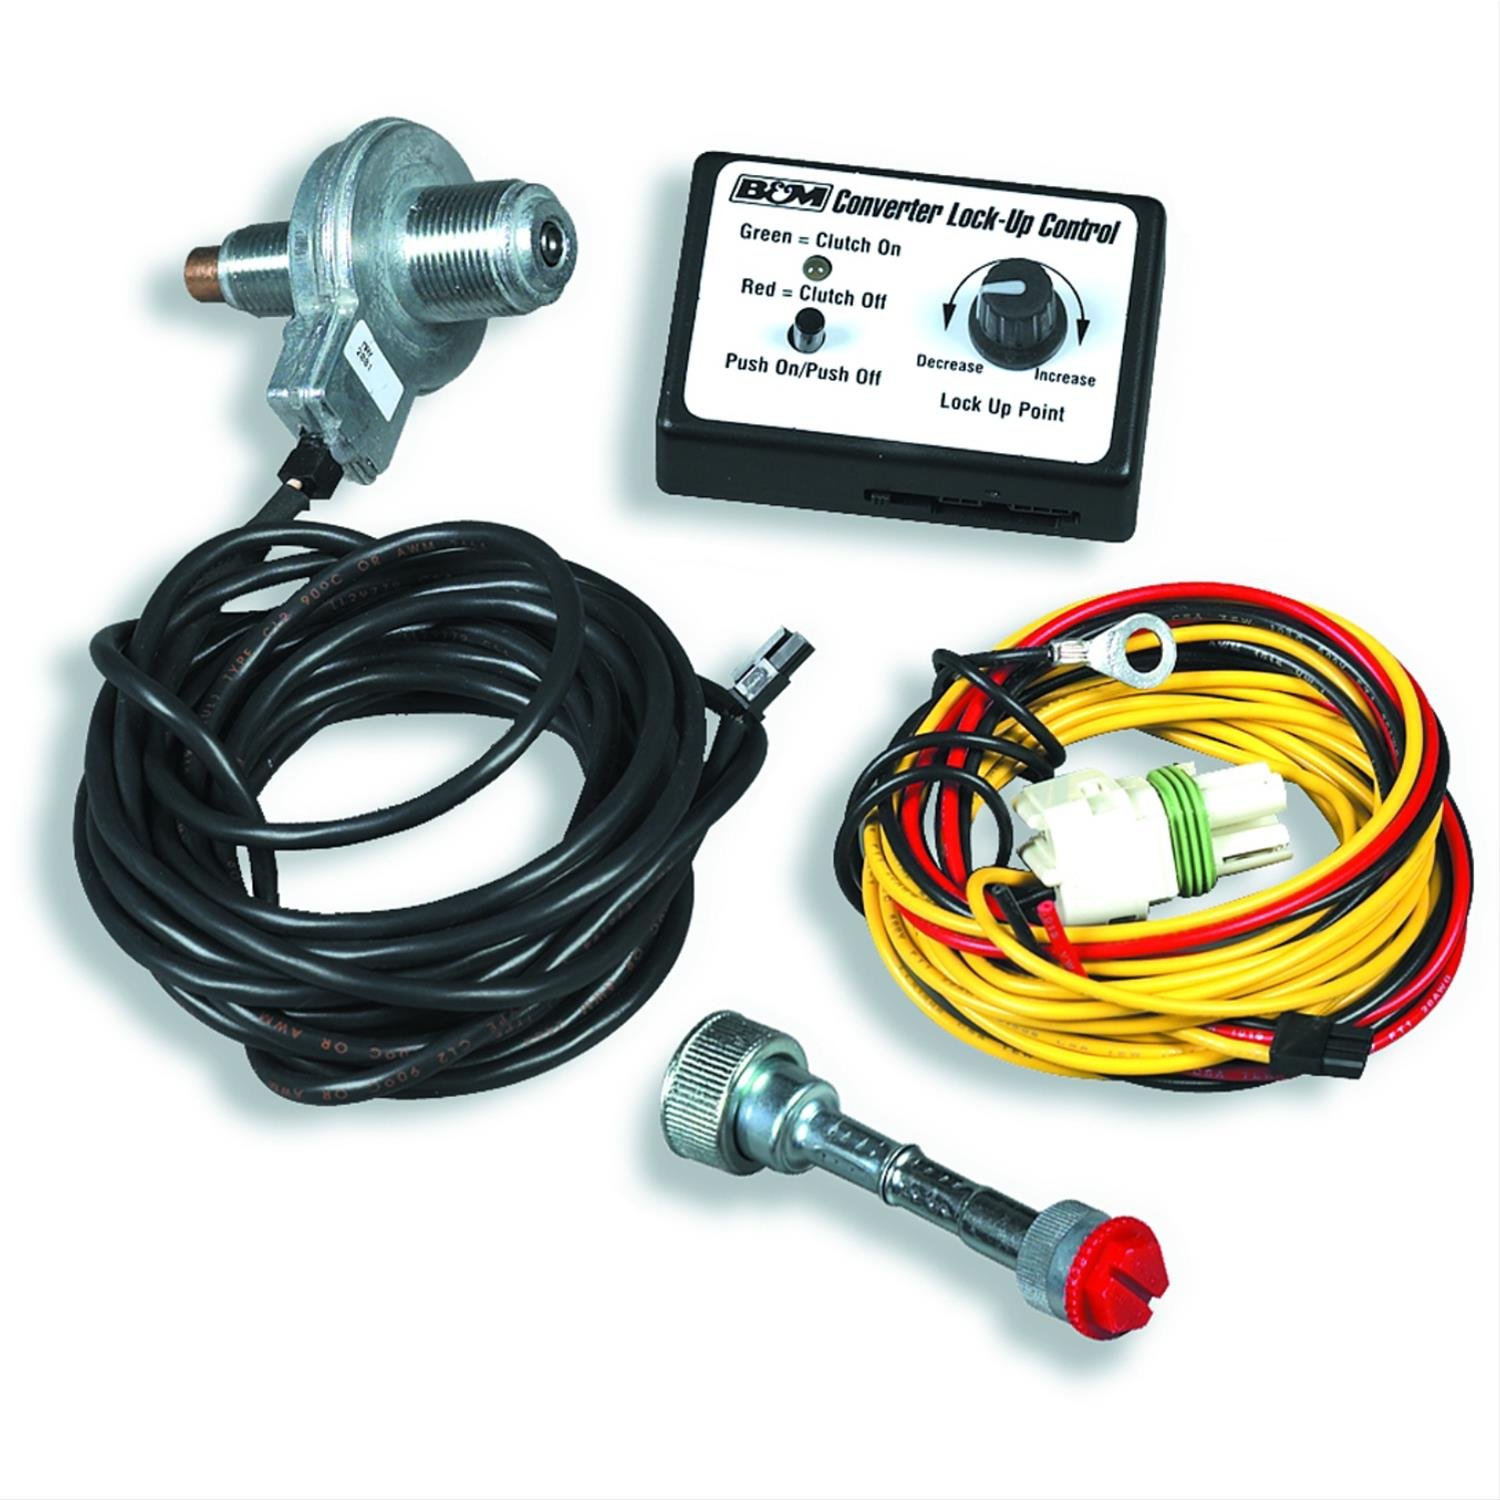 Bm Converter Lockup Controls 70244 Free Shipping On Orders Over 2004r Wiring Diagram 99 At Summit Racing